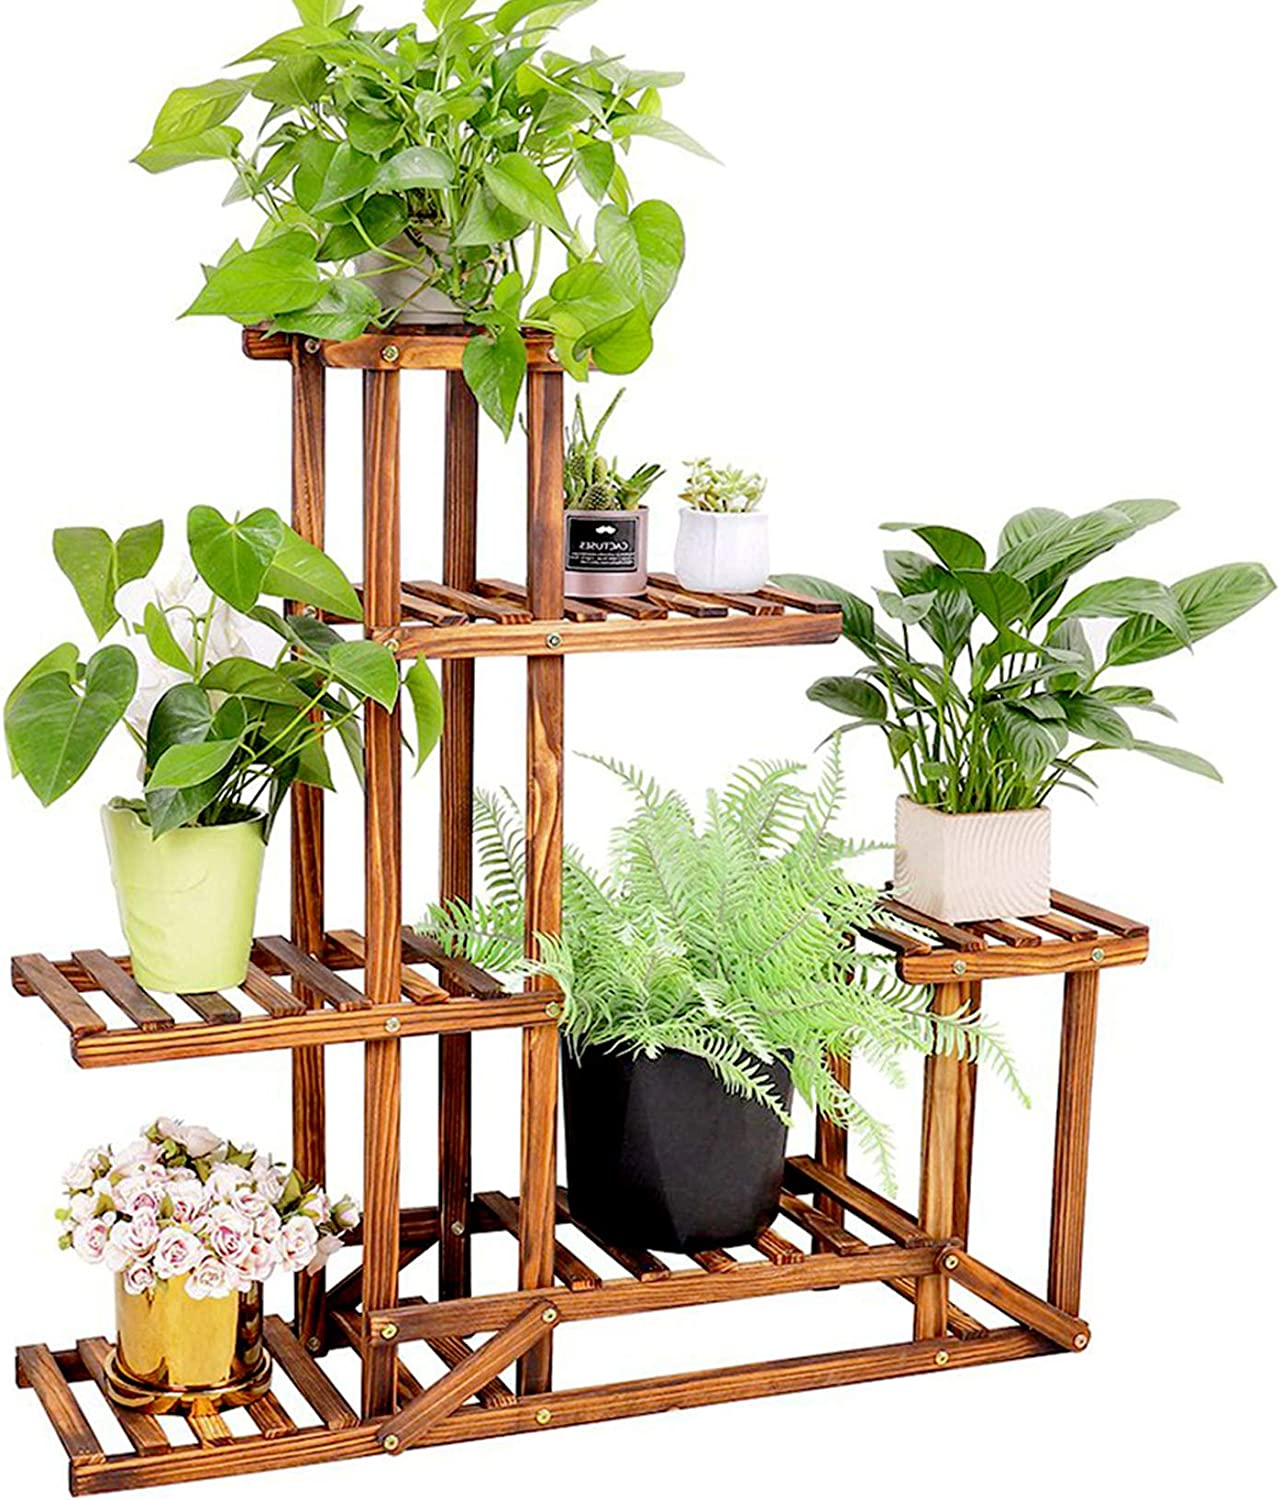 Indoor Outdoor Wooden Plant Stand Shelf Garden Planter Flower Pot Holder Home